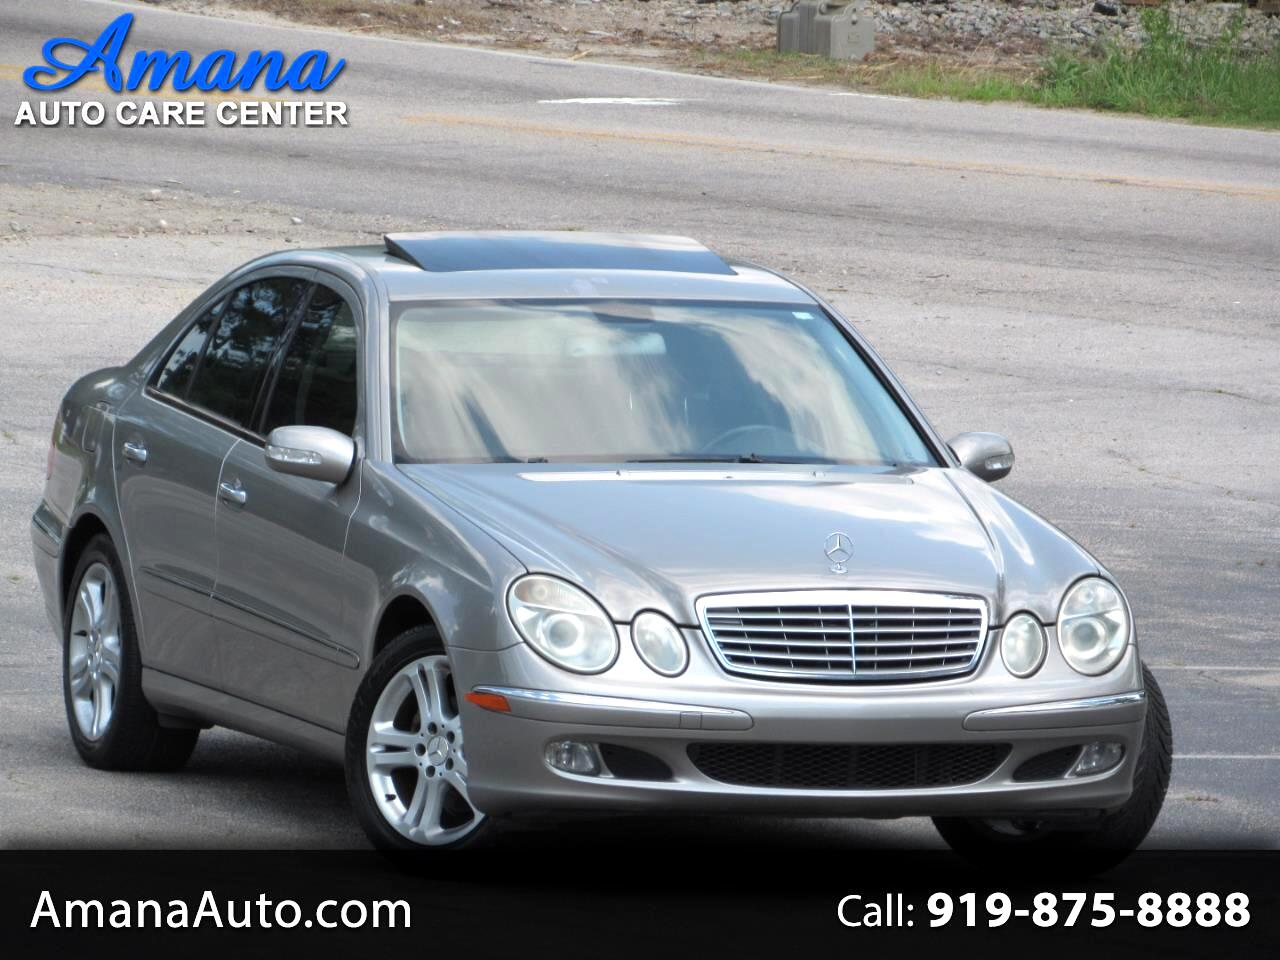 Mercedes-Benz E-Class 4dr Sdn 3.2L *Ltd Avail* 2005